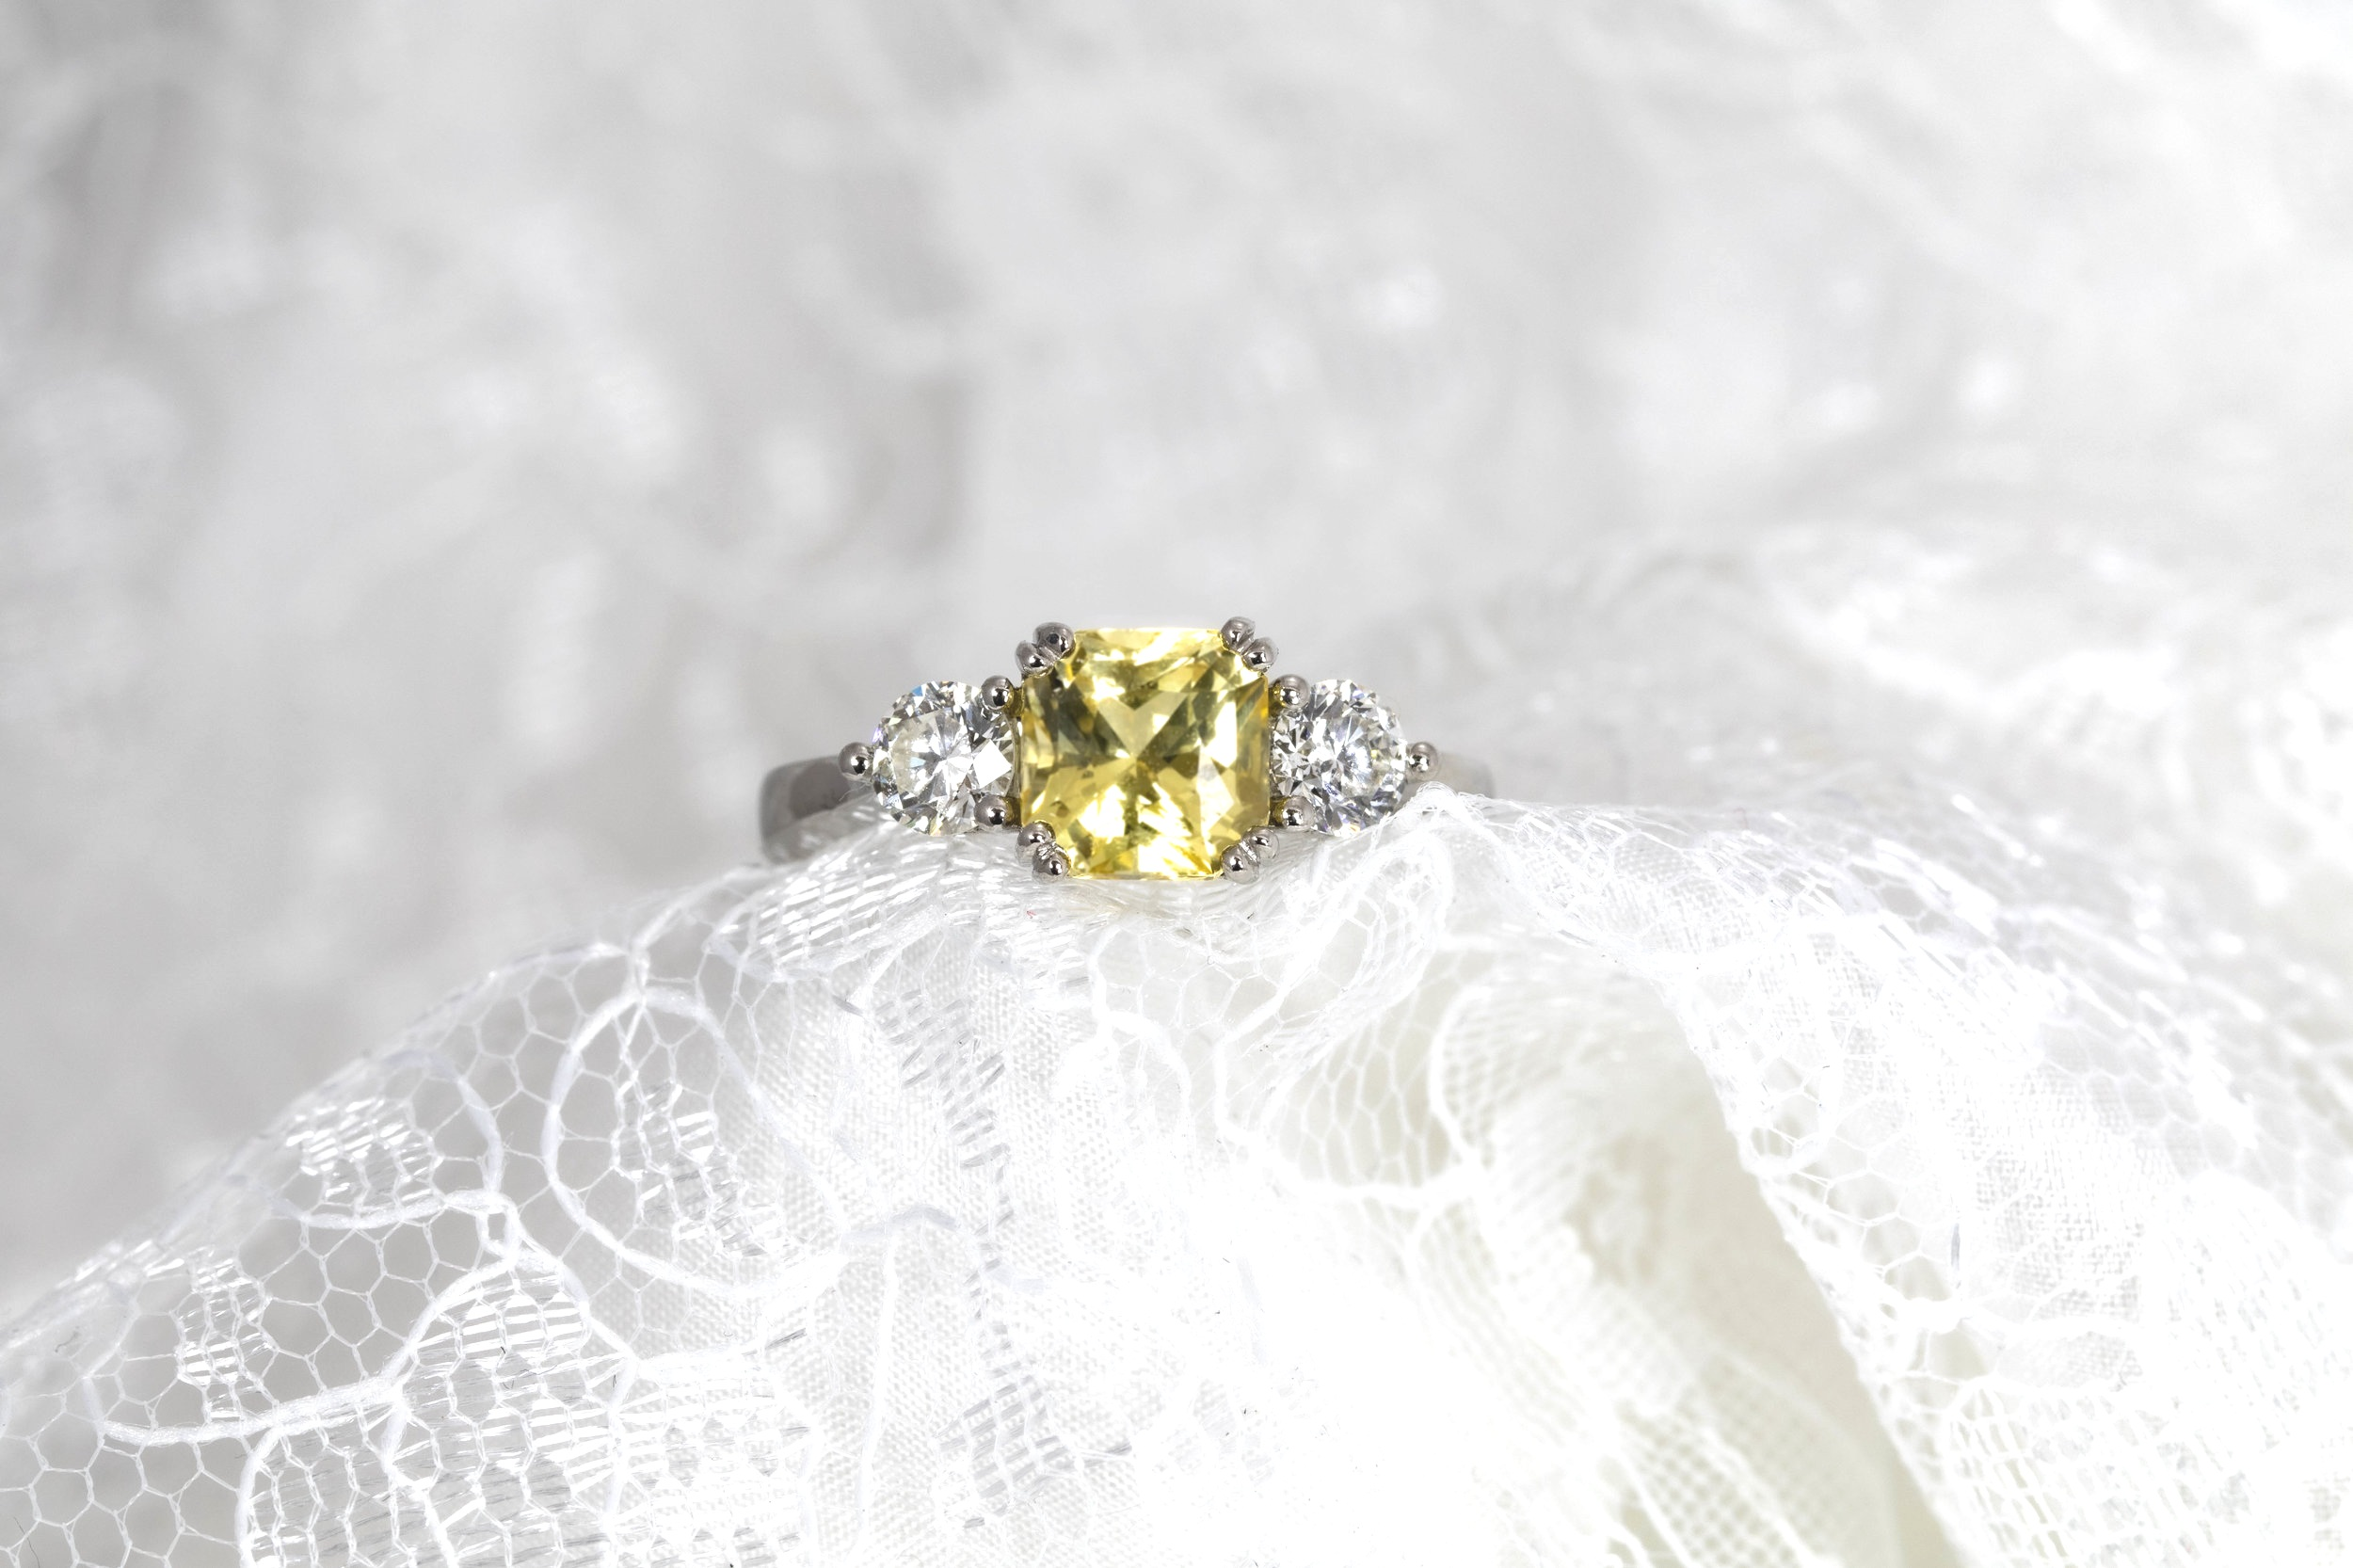 Platinum mounted 2.03ct Yellow sapphire and diamond set 3 stone ring with grain set diamond bezels. Made in Chichester, England.